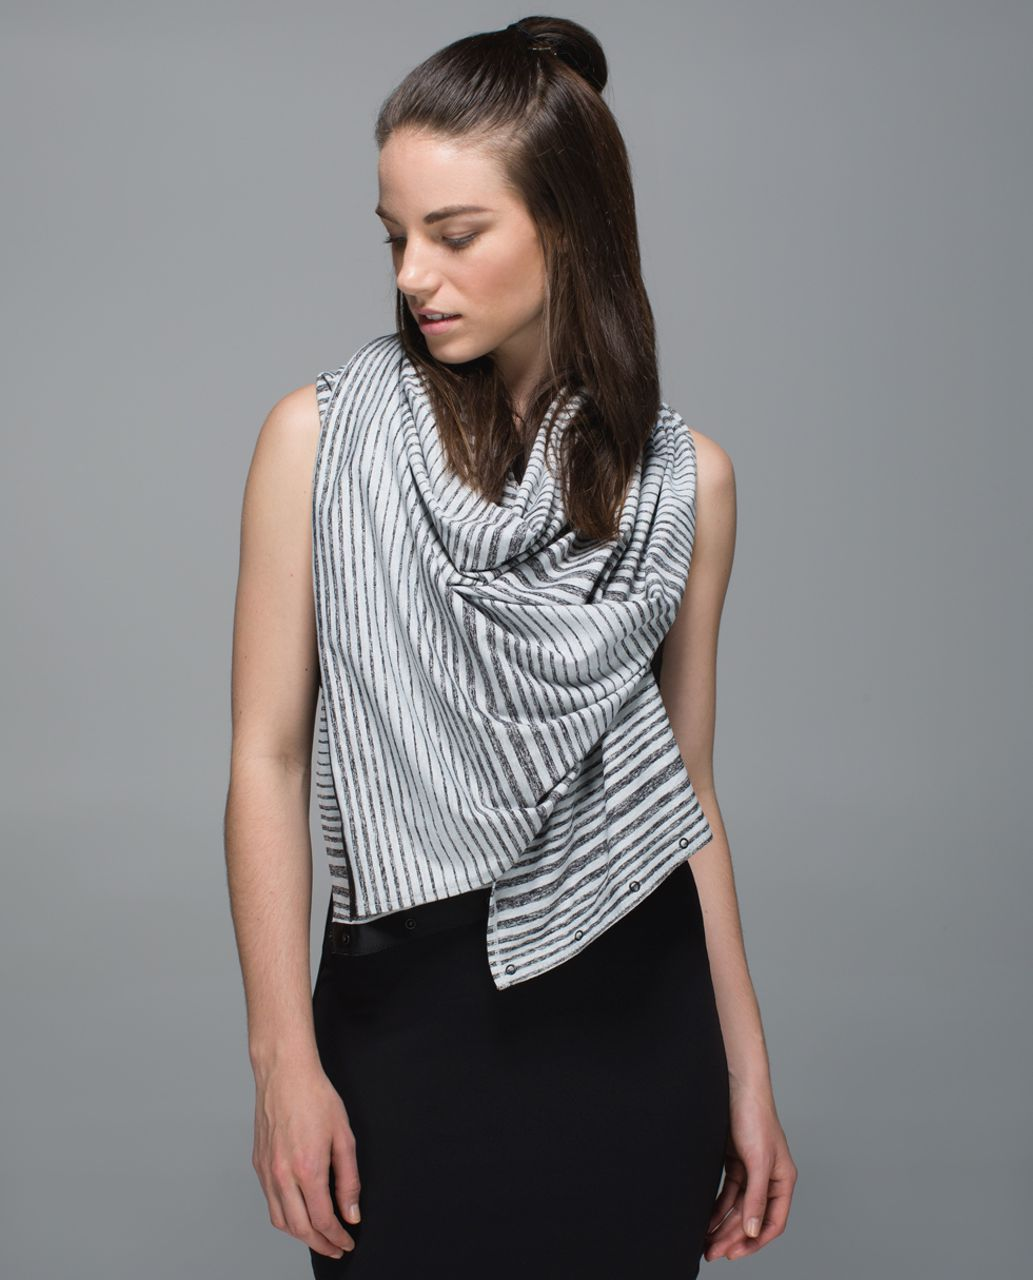 Lululemon Vinyasa Scarf *Rulu - Mini Akido Stripe Heathered Black Heathered Silver Spoon (First Release)